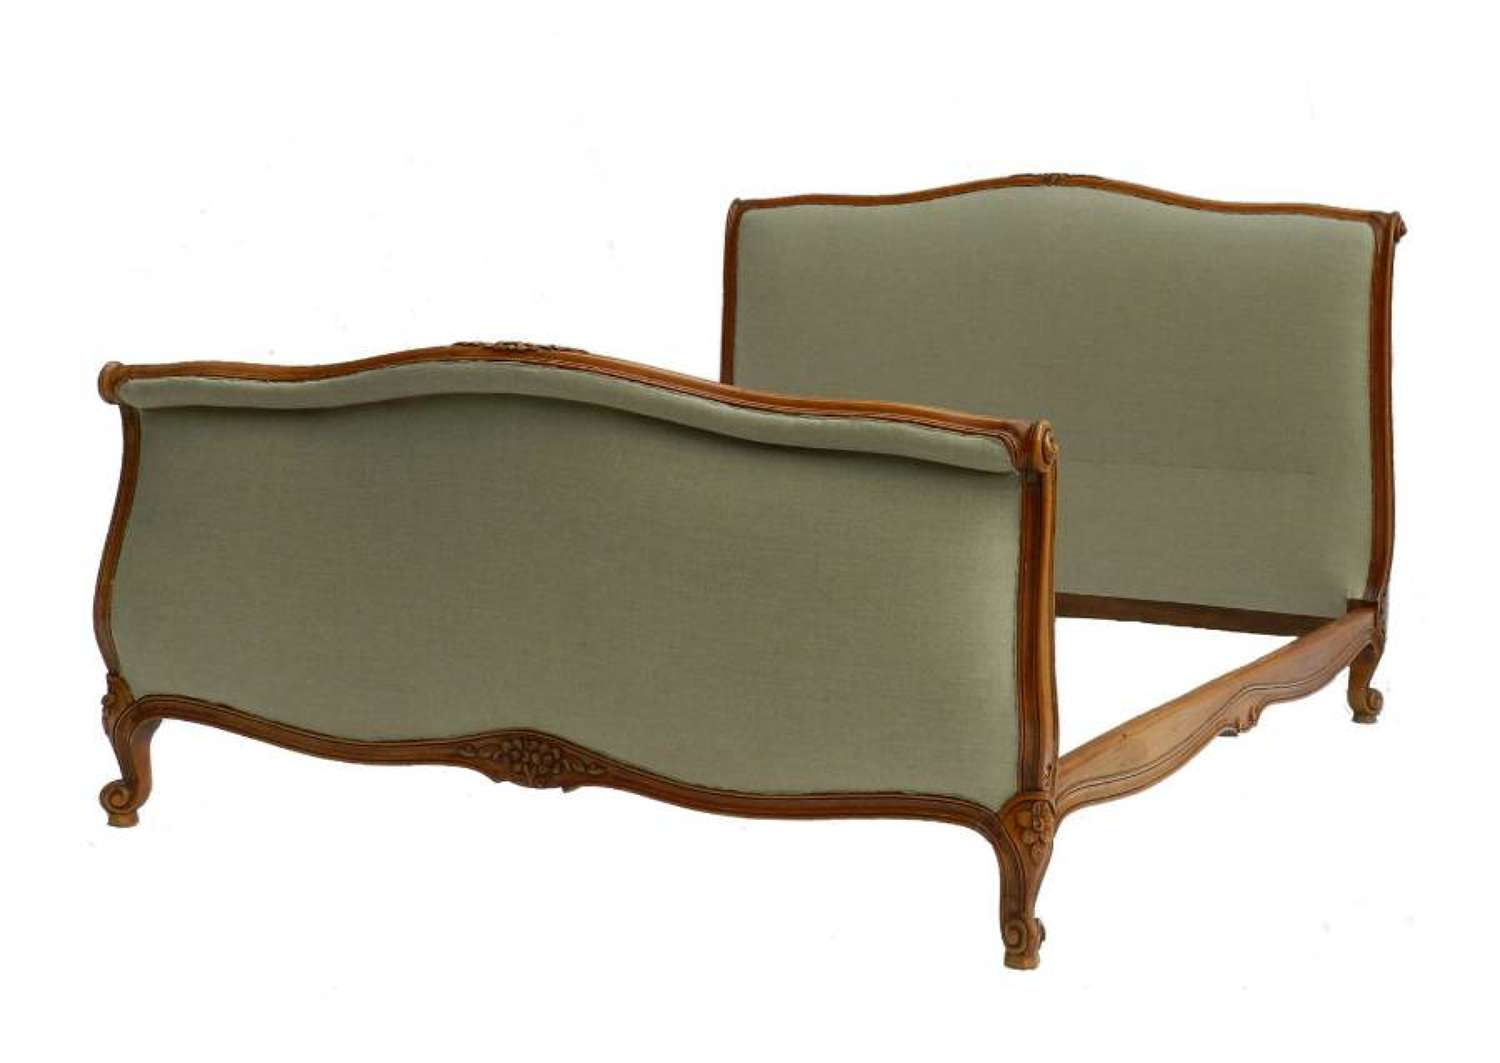 Scroll End French Bed + Base recovered in Linen Double or King size